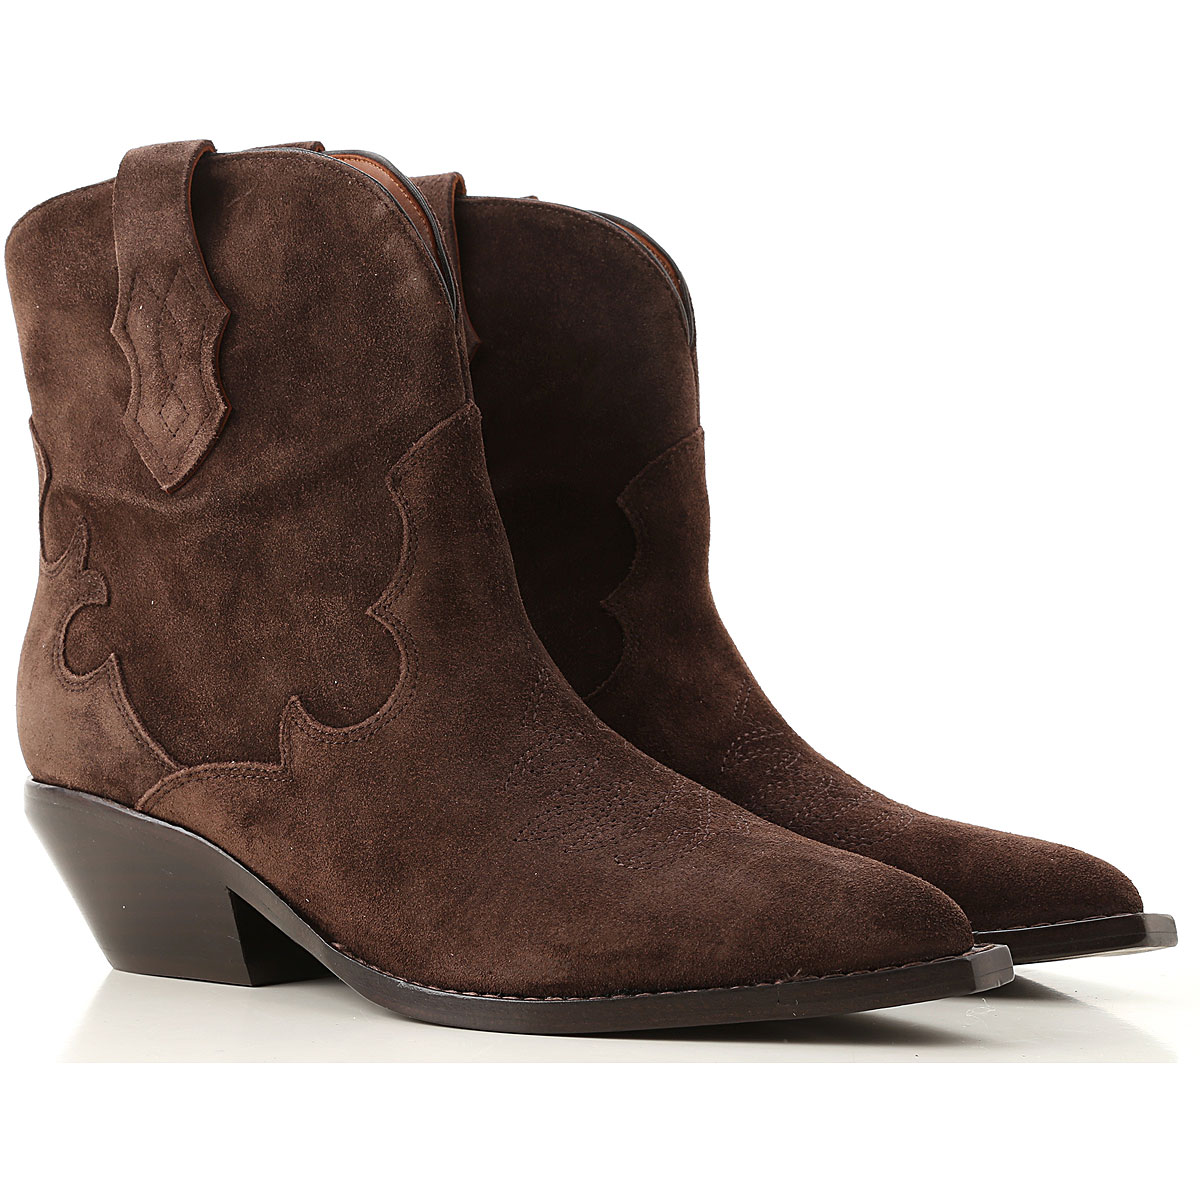 Sigerson Morrison Boots for Women, Booties On Sale, Walnut Wood, Suede leather, 2019, 10 7 8